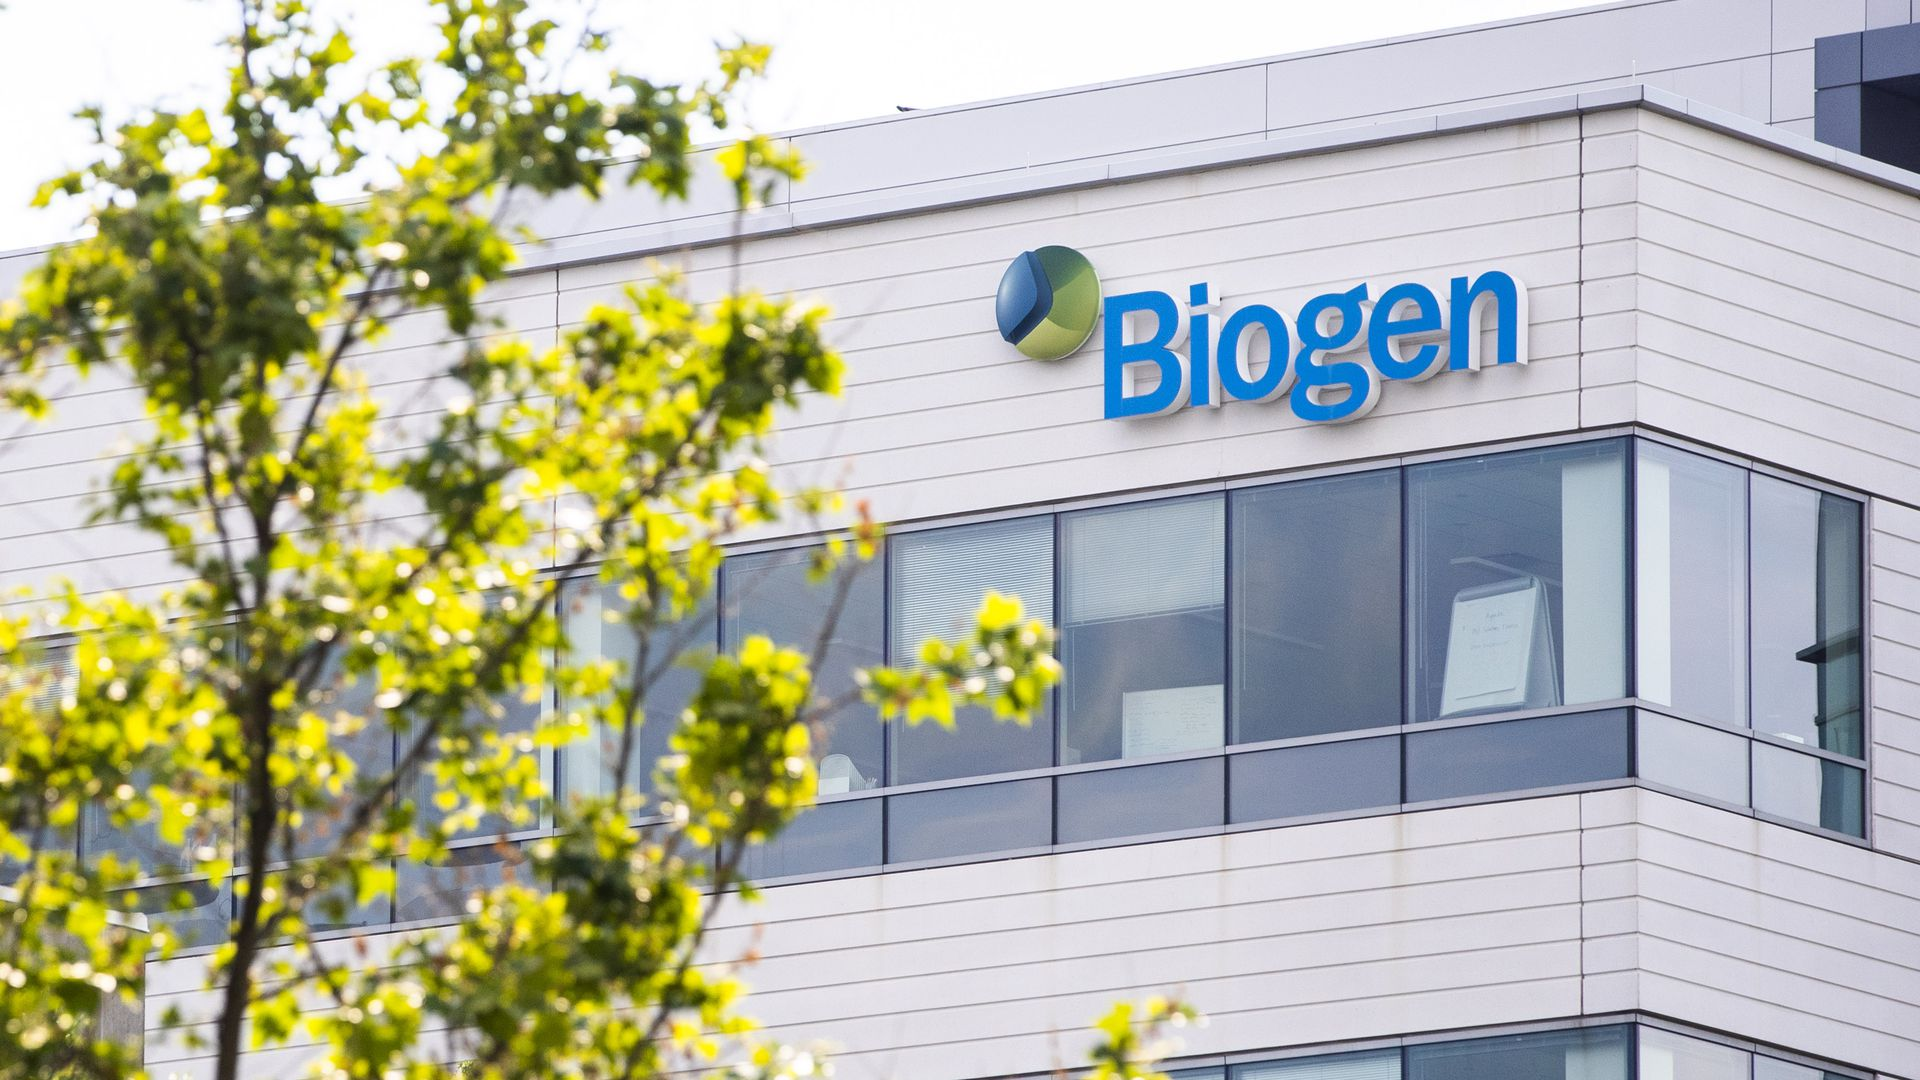 Biogen says FDA didn't push for trial before Alzheimer's approval - Axios